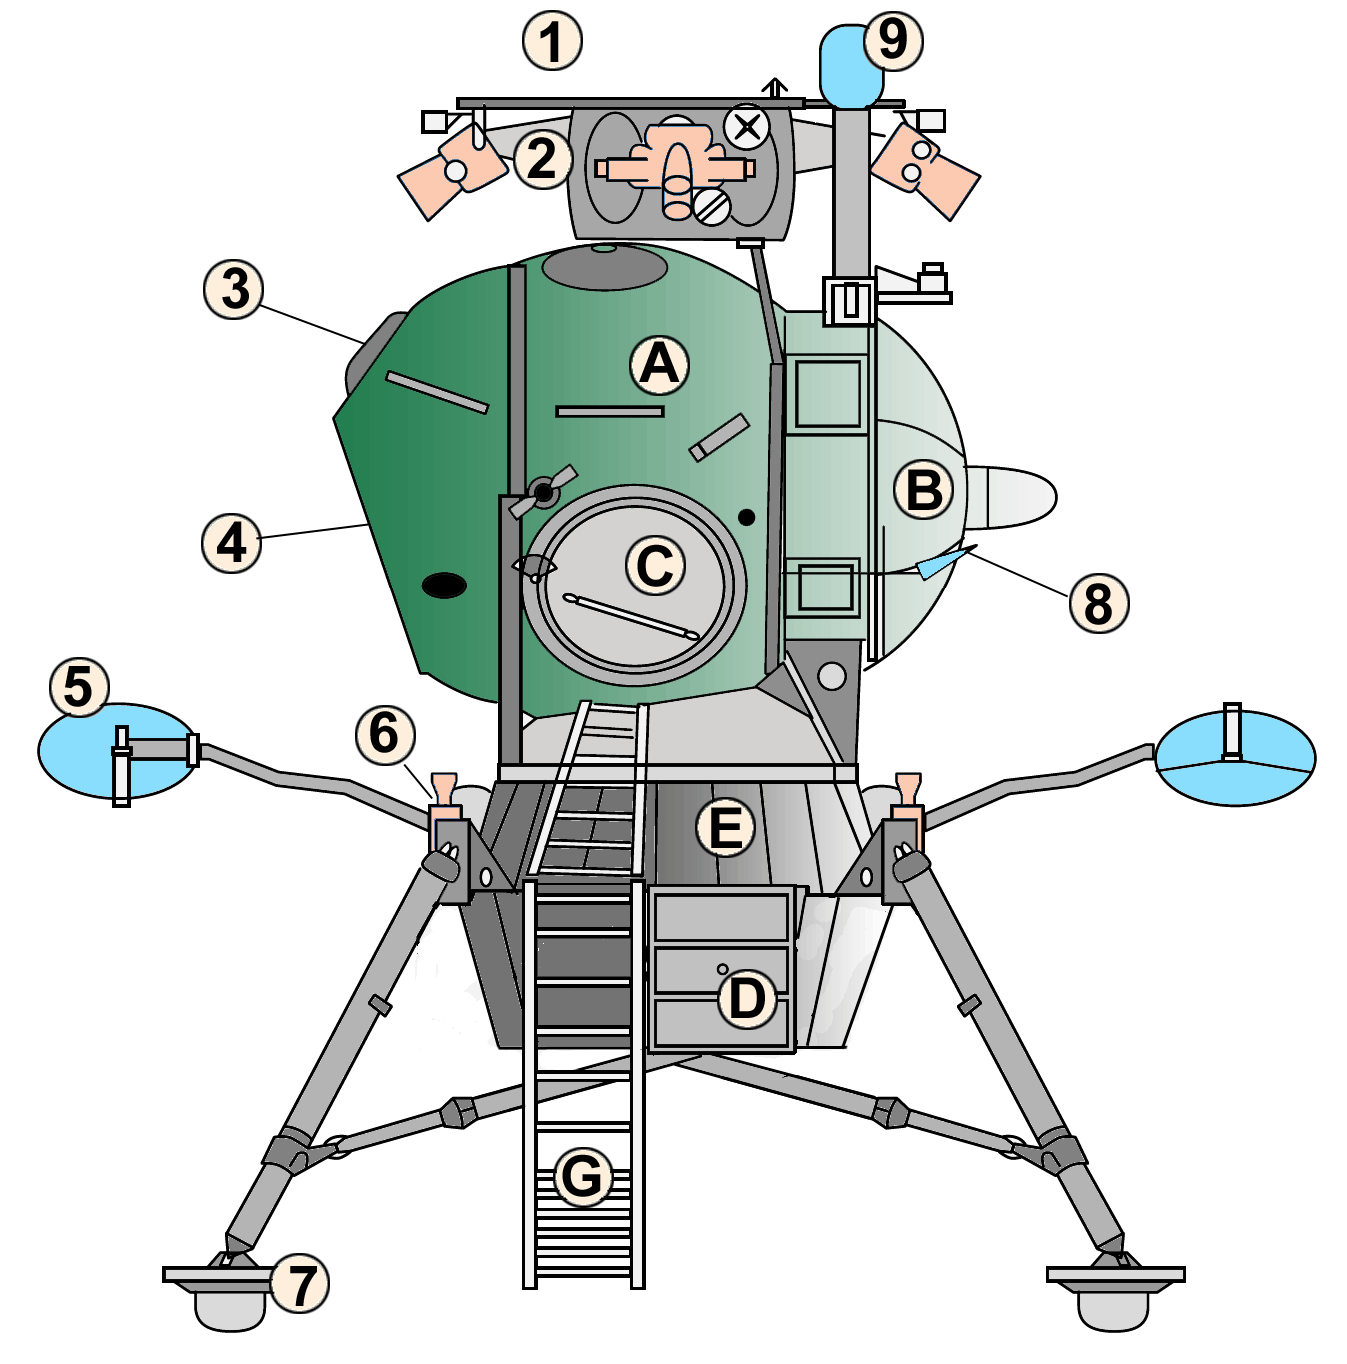 file soviet lk spacecraft drawing with labels and some colors png